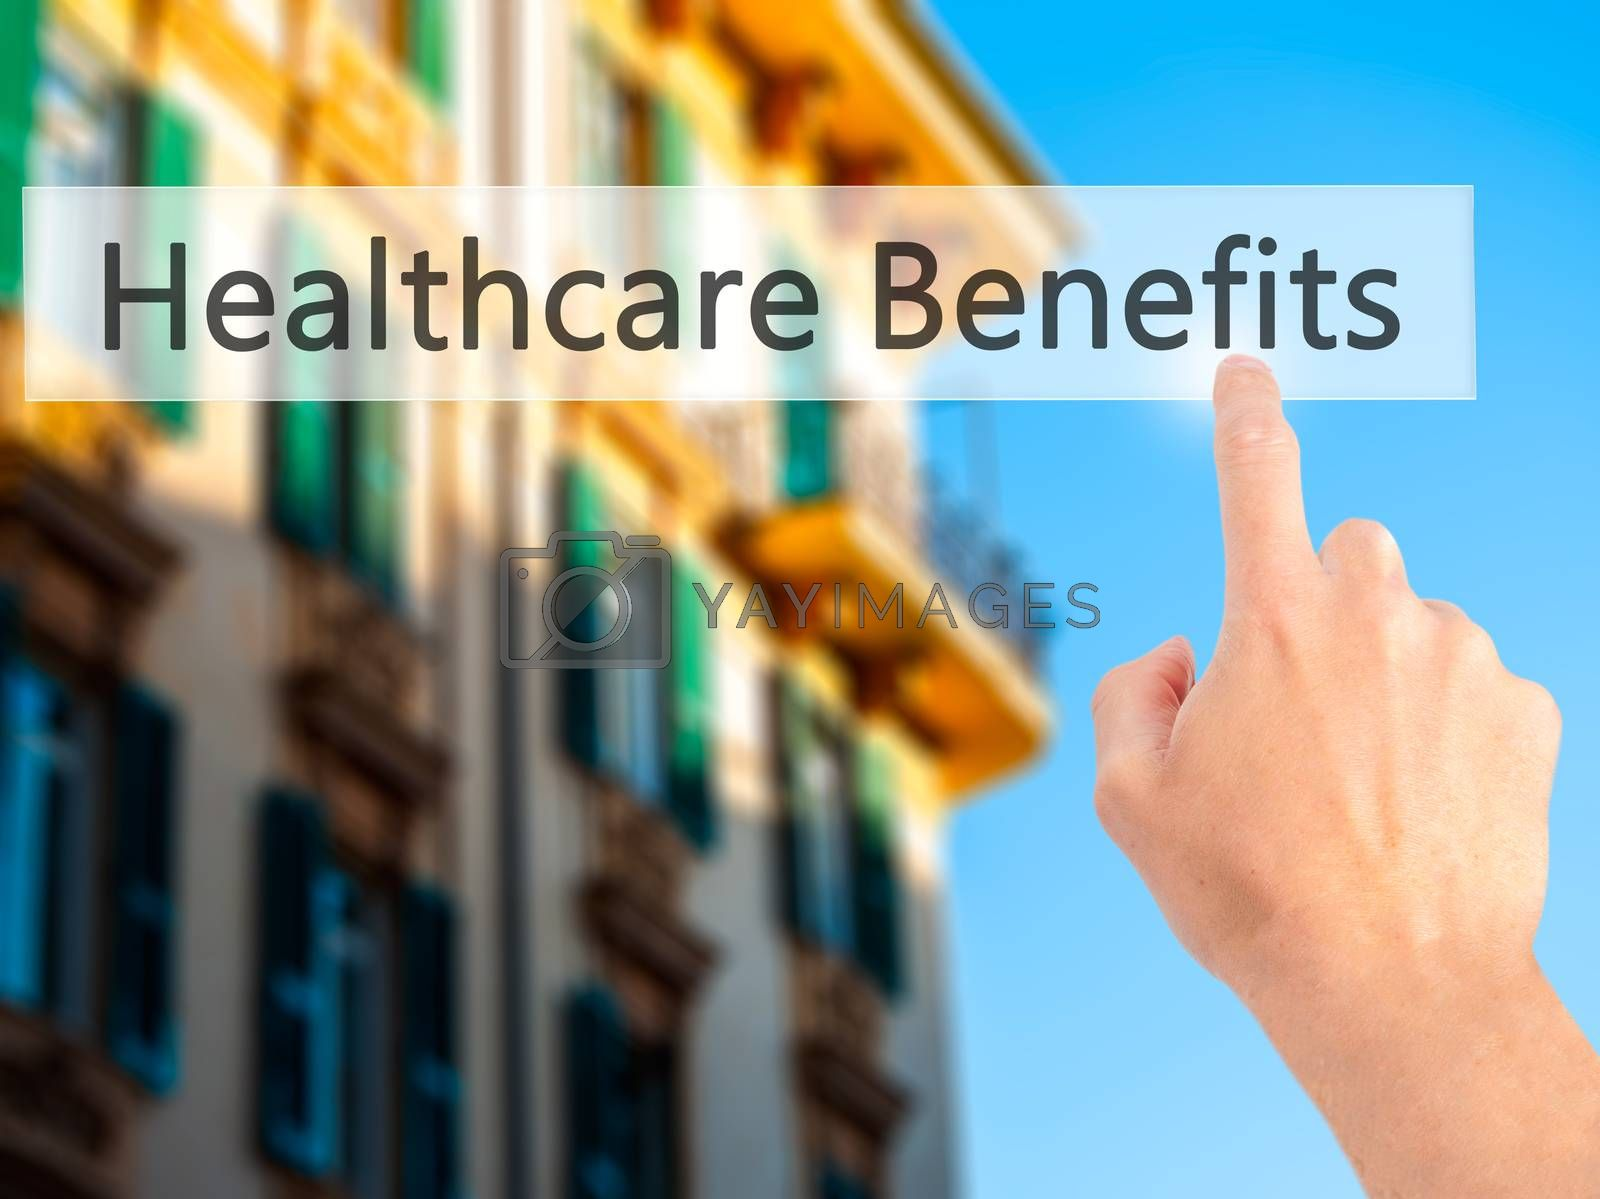 Healthcare Benefits - Hand pressing a button on blurred backgrou by jackald